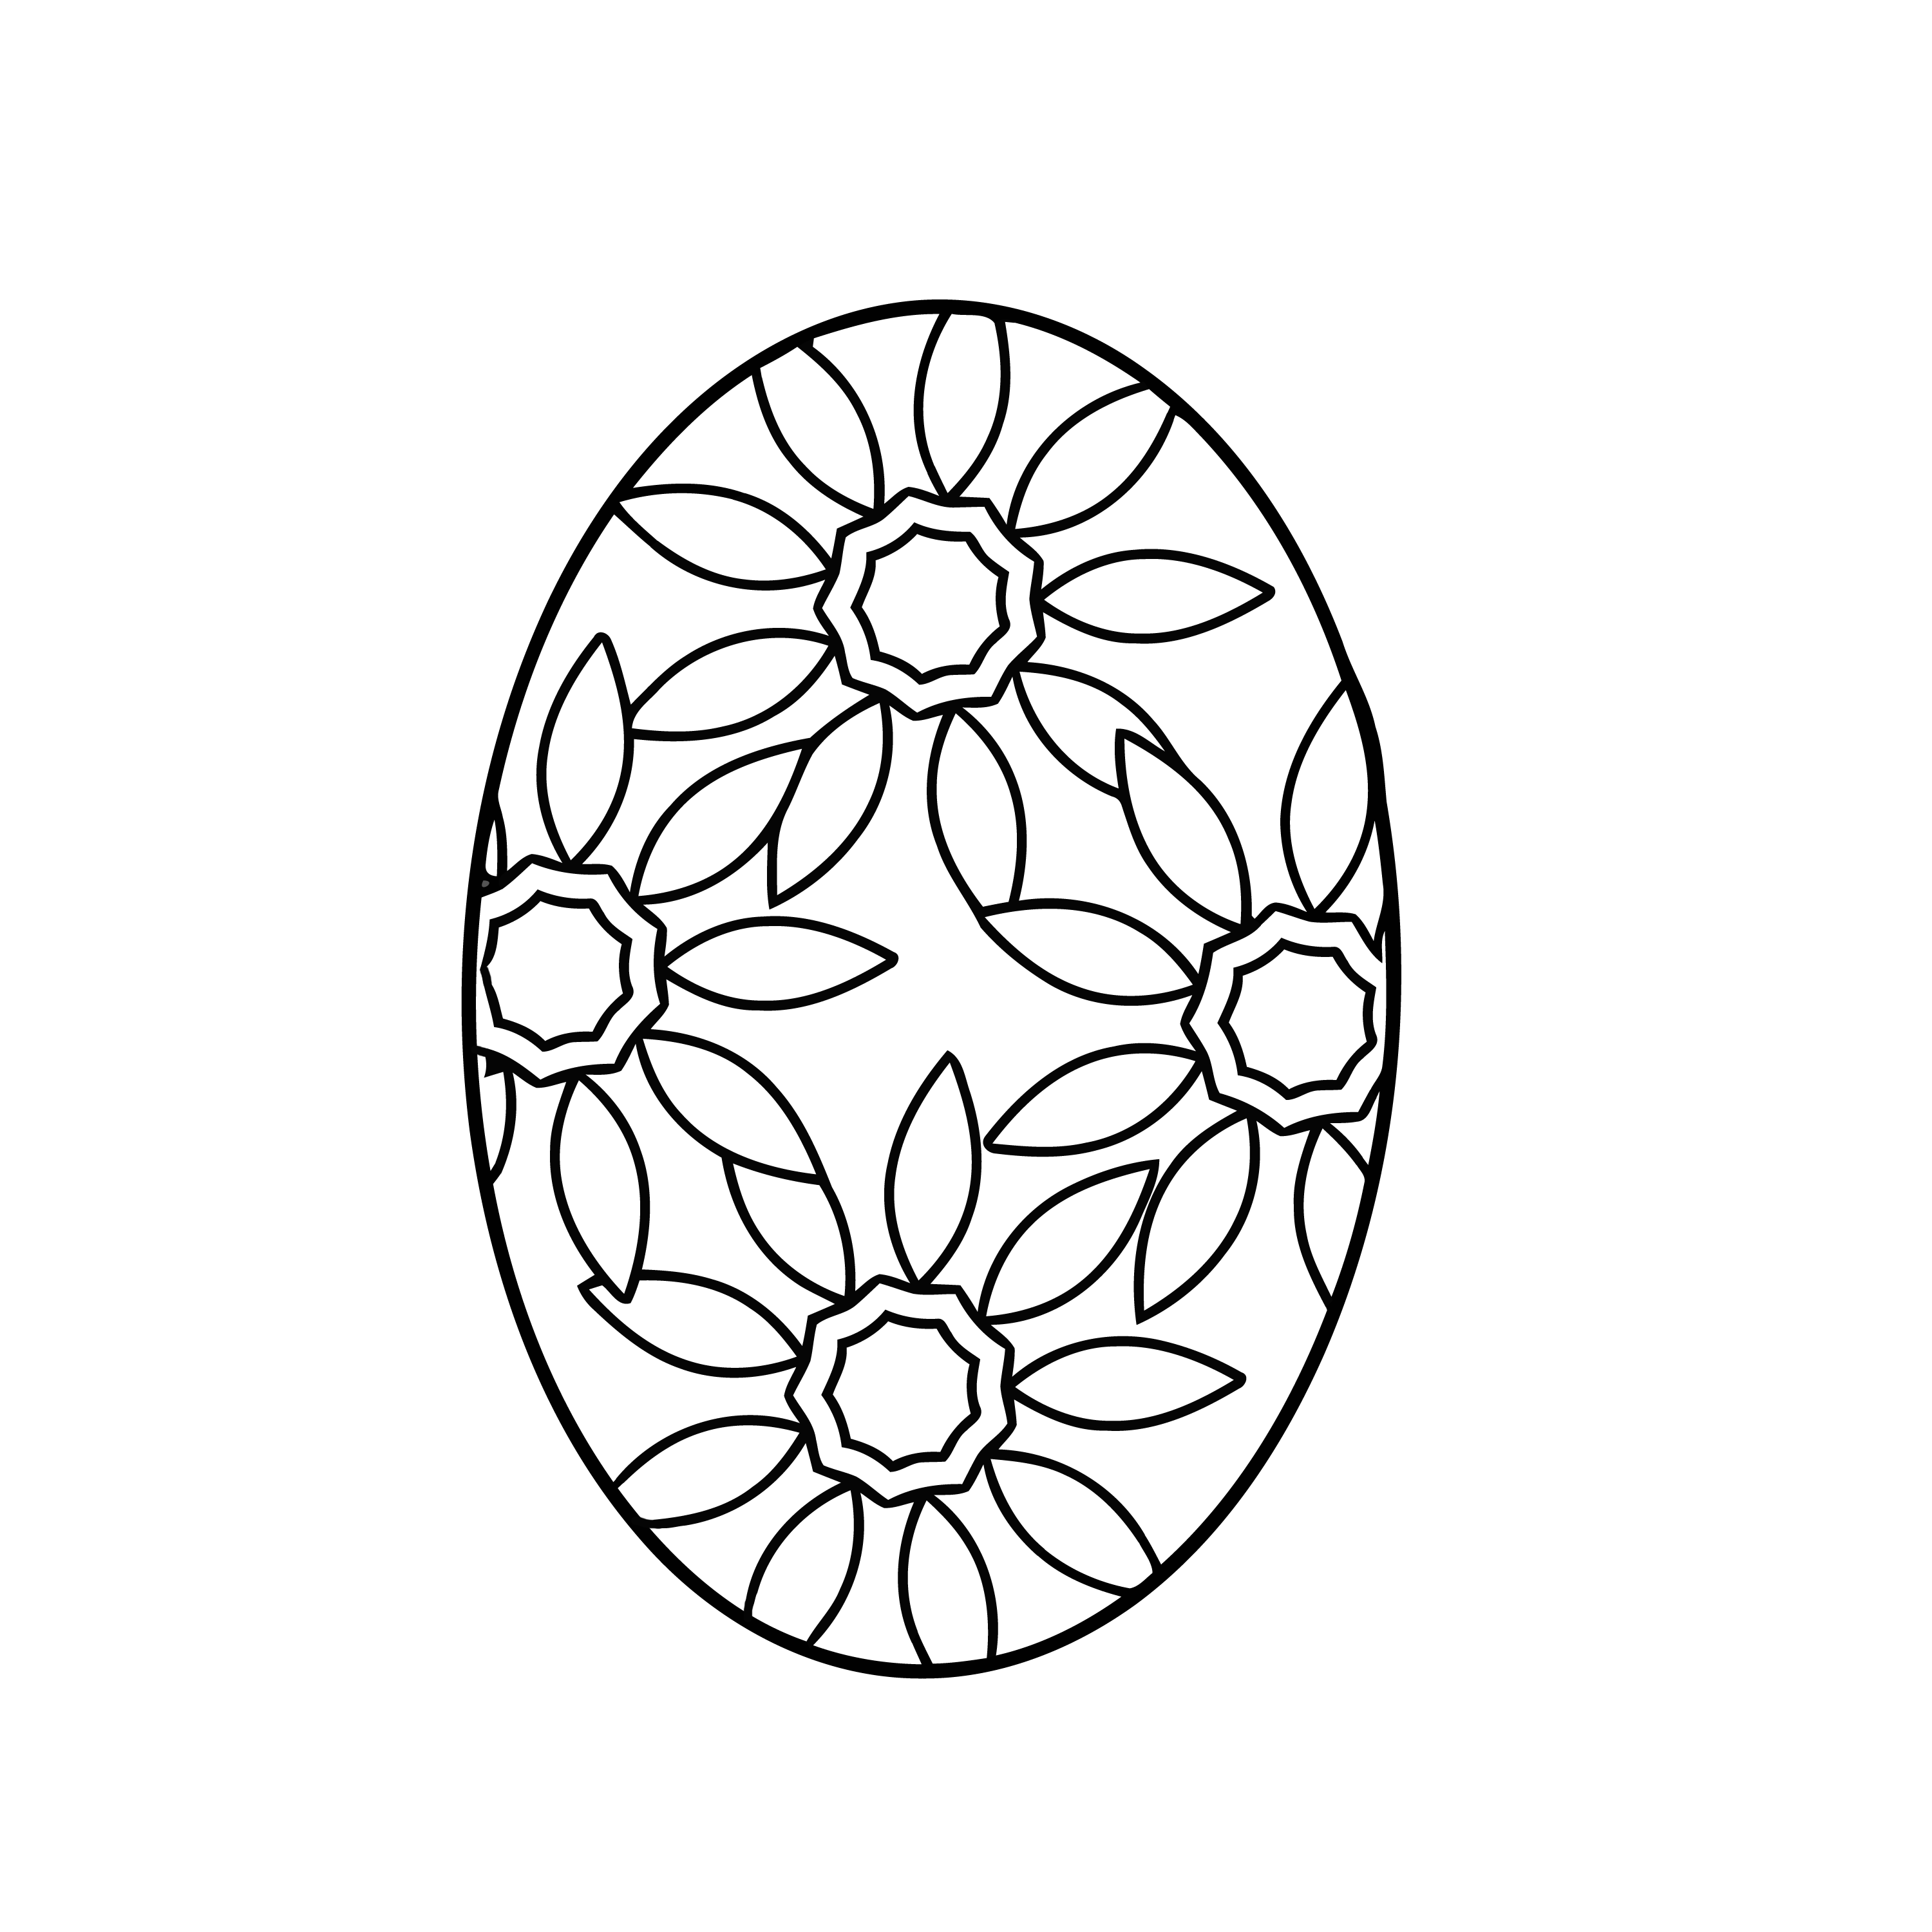 easter egg coloring page flowered | yooall. | Easter | Pinterest ...